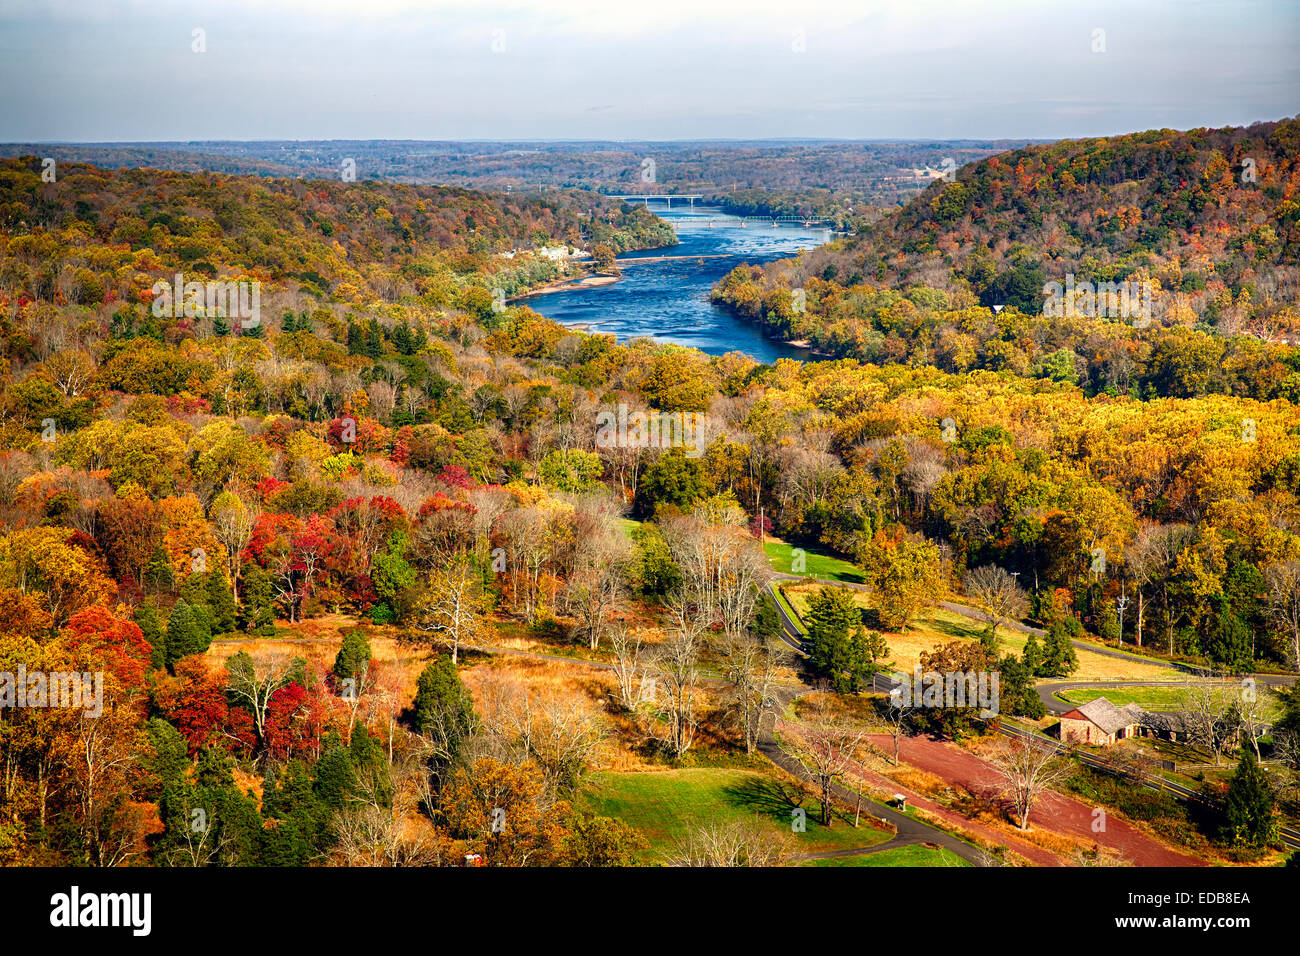 View of the Delaware River During Peak Fall Foliage with the New Hope-Lambertville Bridges, Bucks County, Pennsylvania - Stock Image